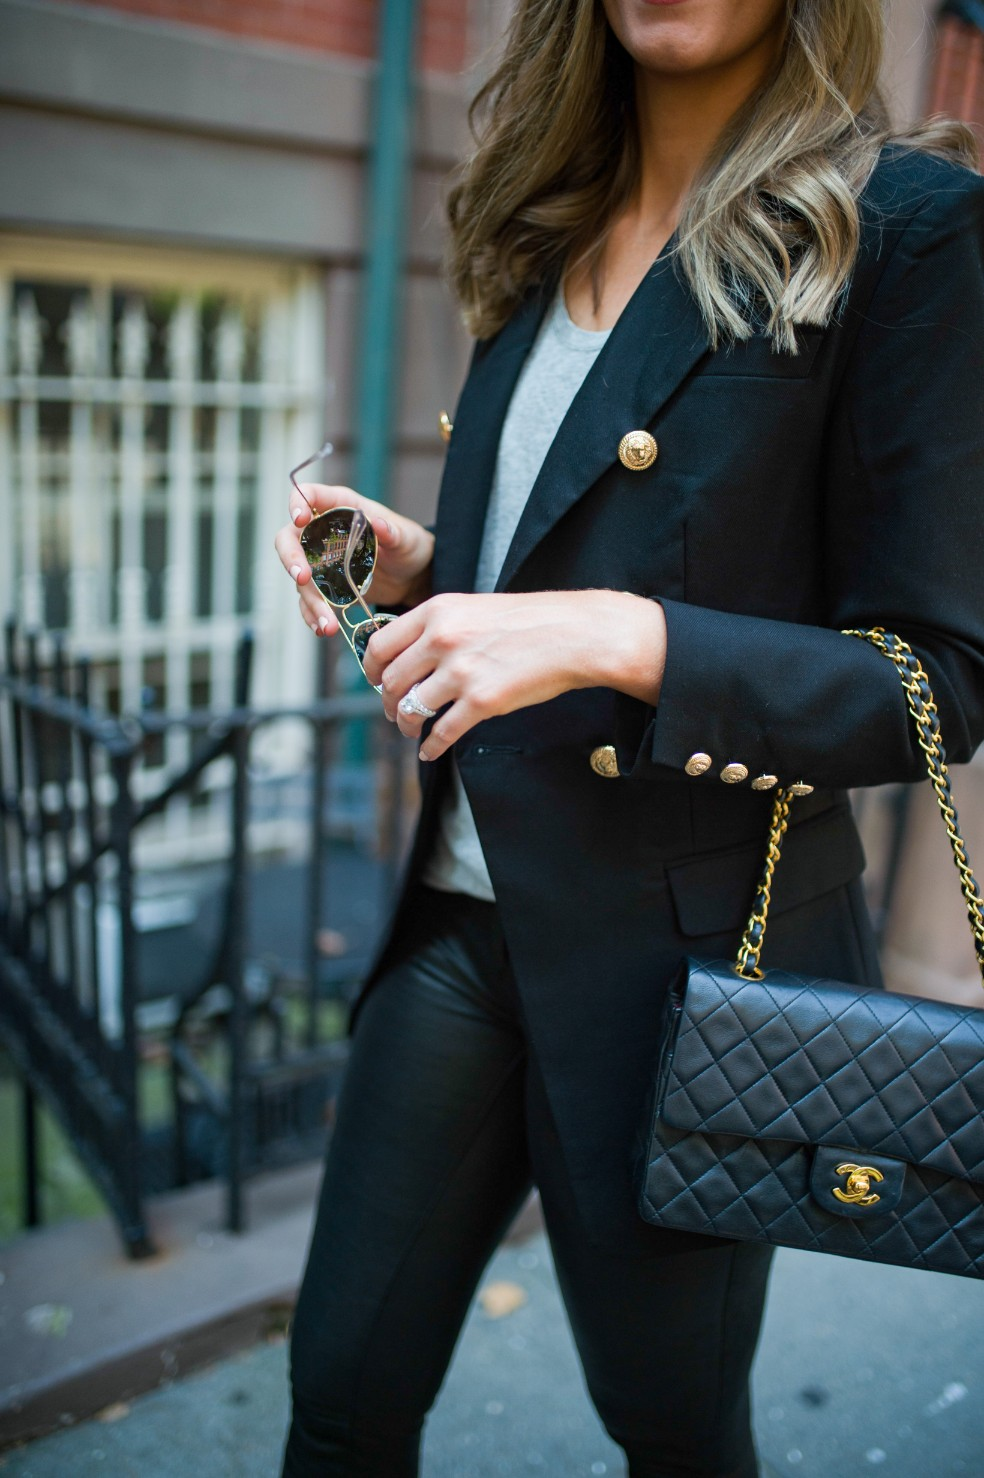 blazer and leather pants outfit ideas grey tee and leather chanel flap bag fashion blogger new york street style 8